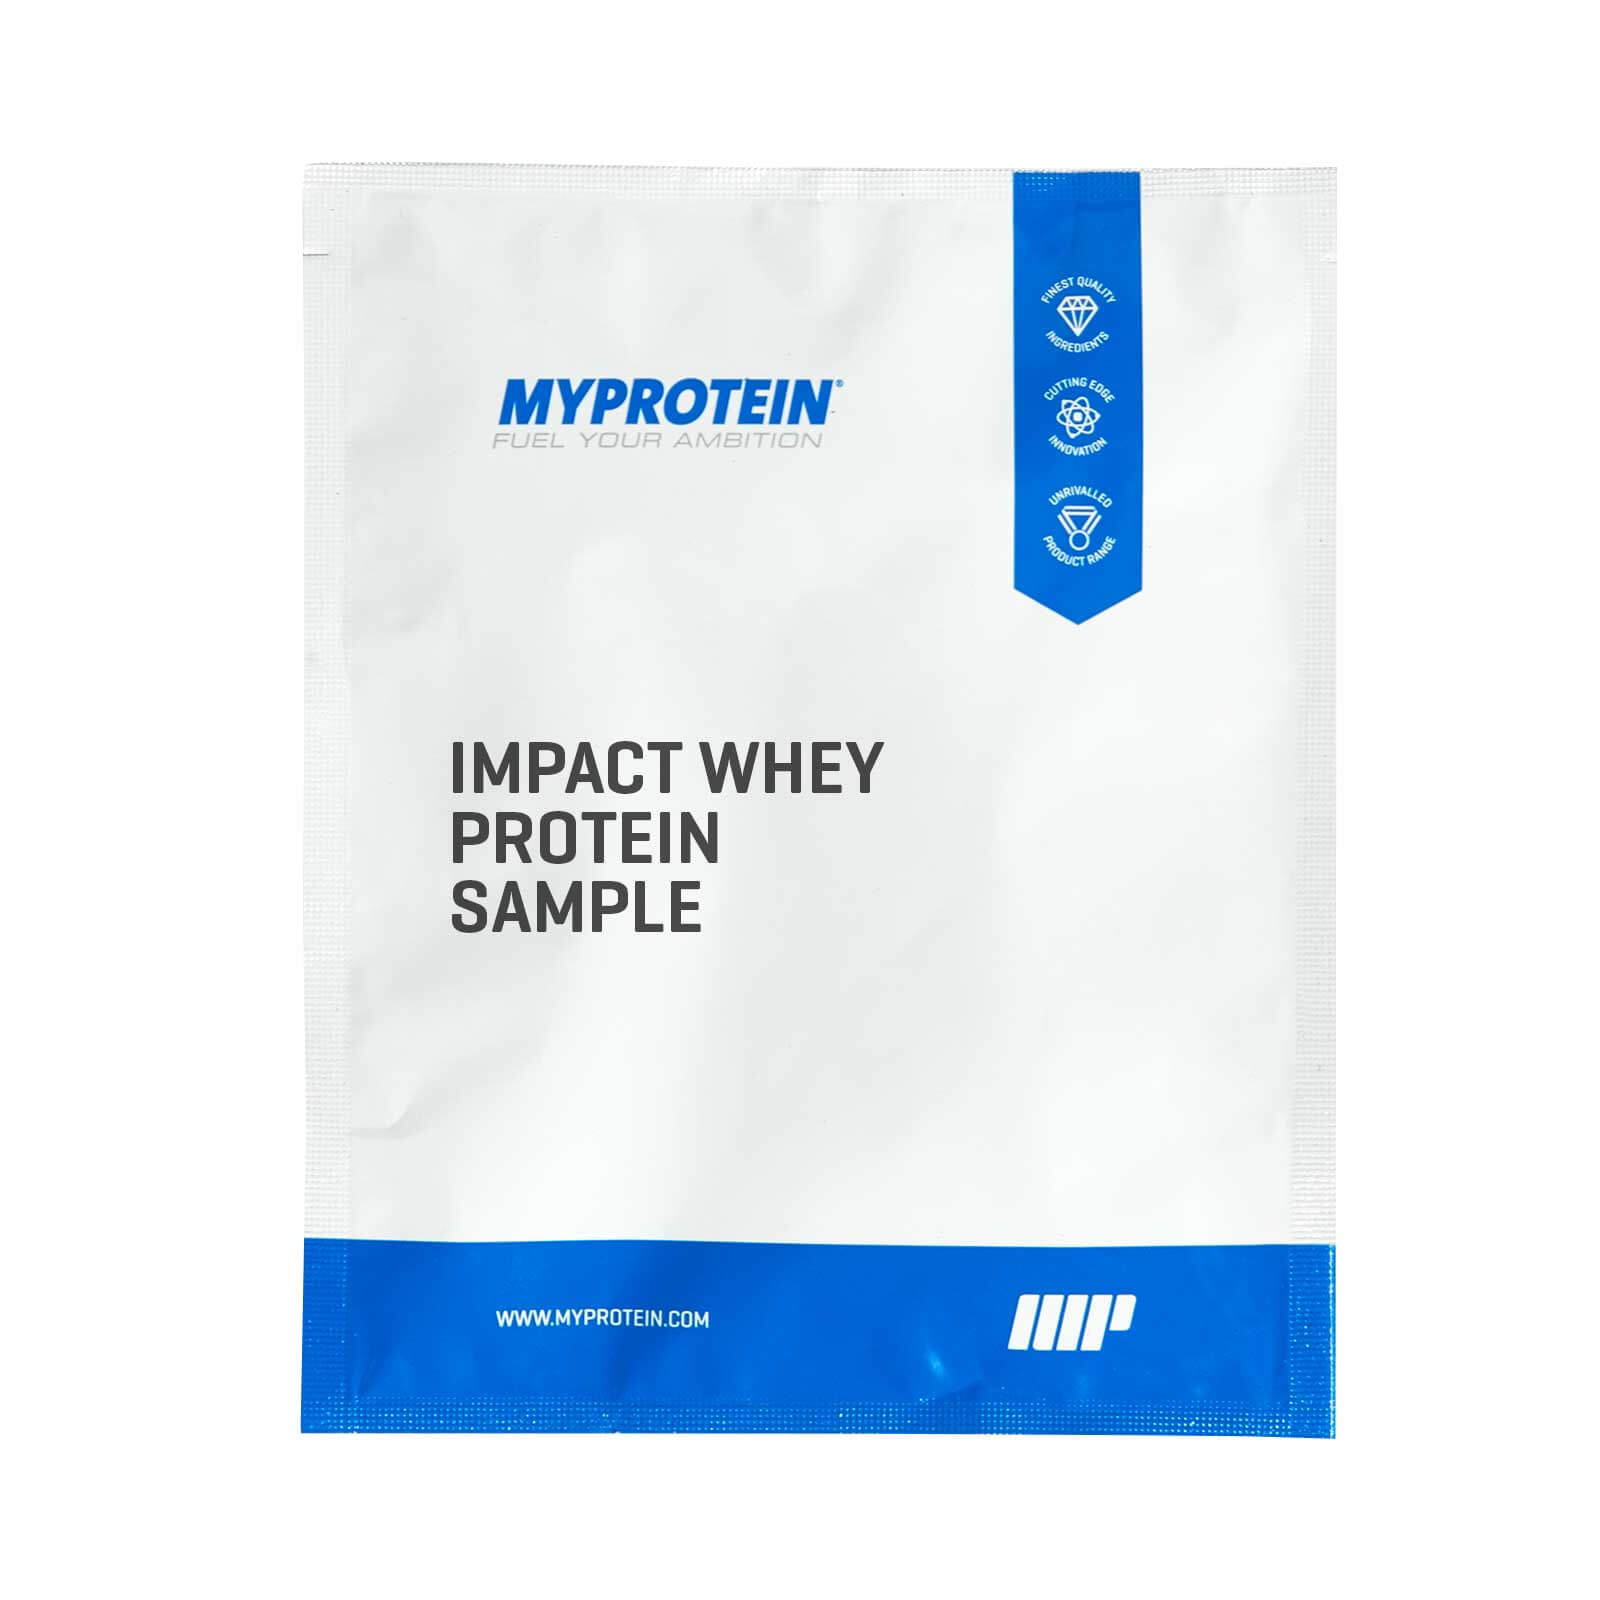 Impact Whey Protein (Sample) - Banana - 25g